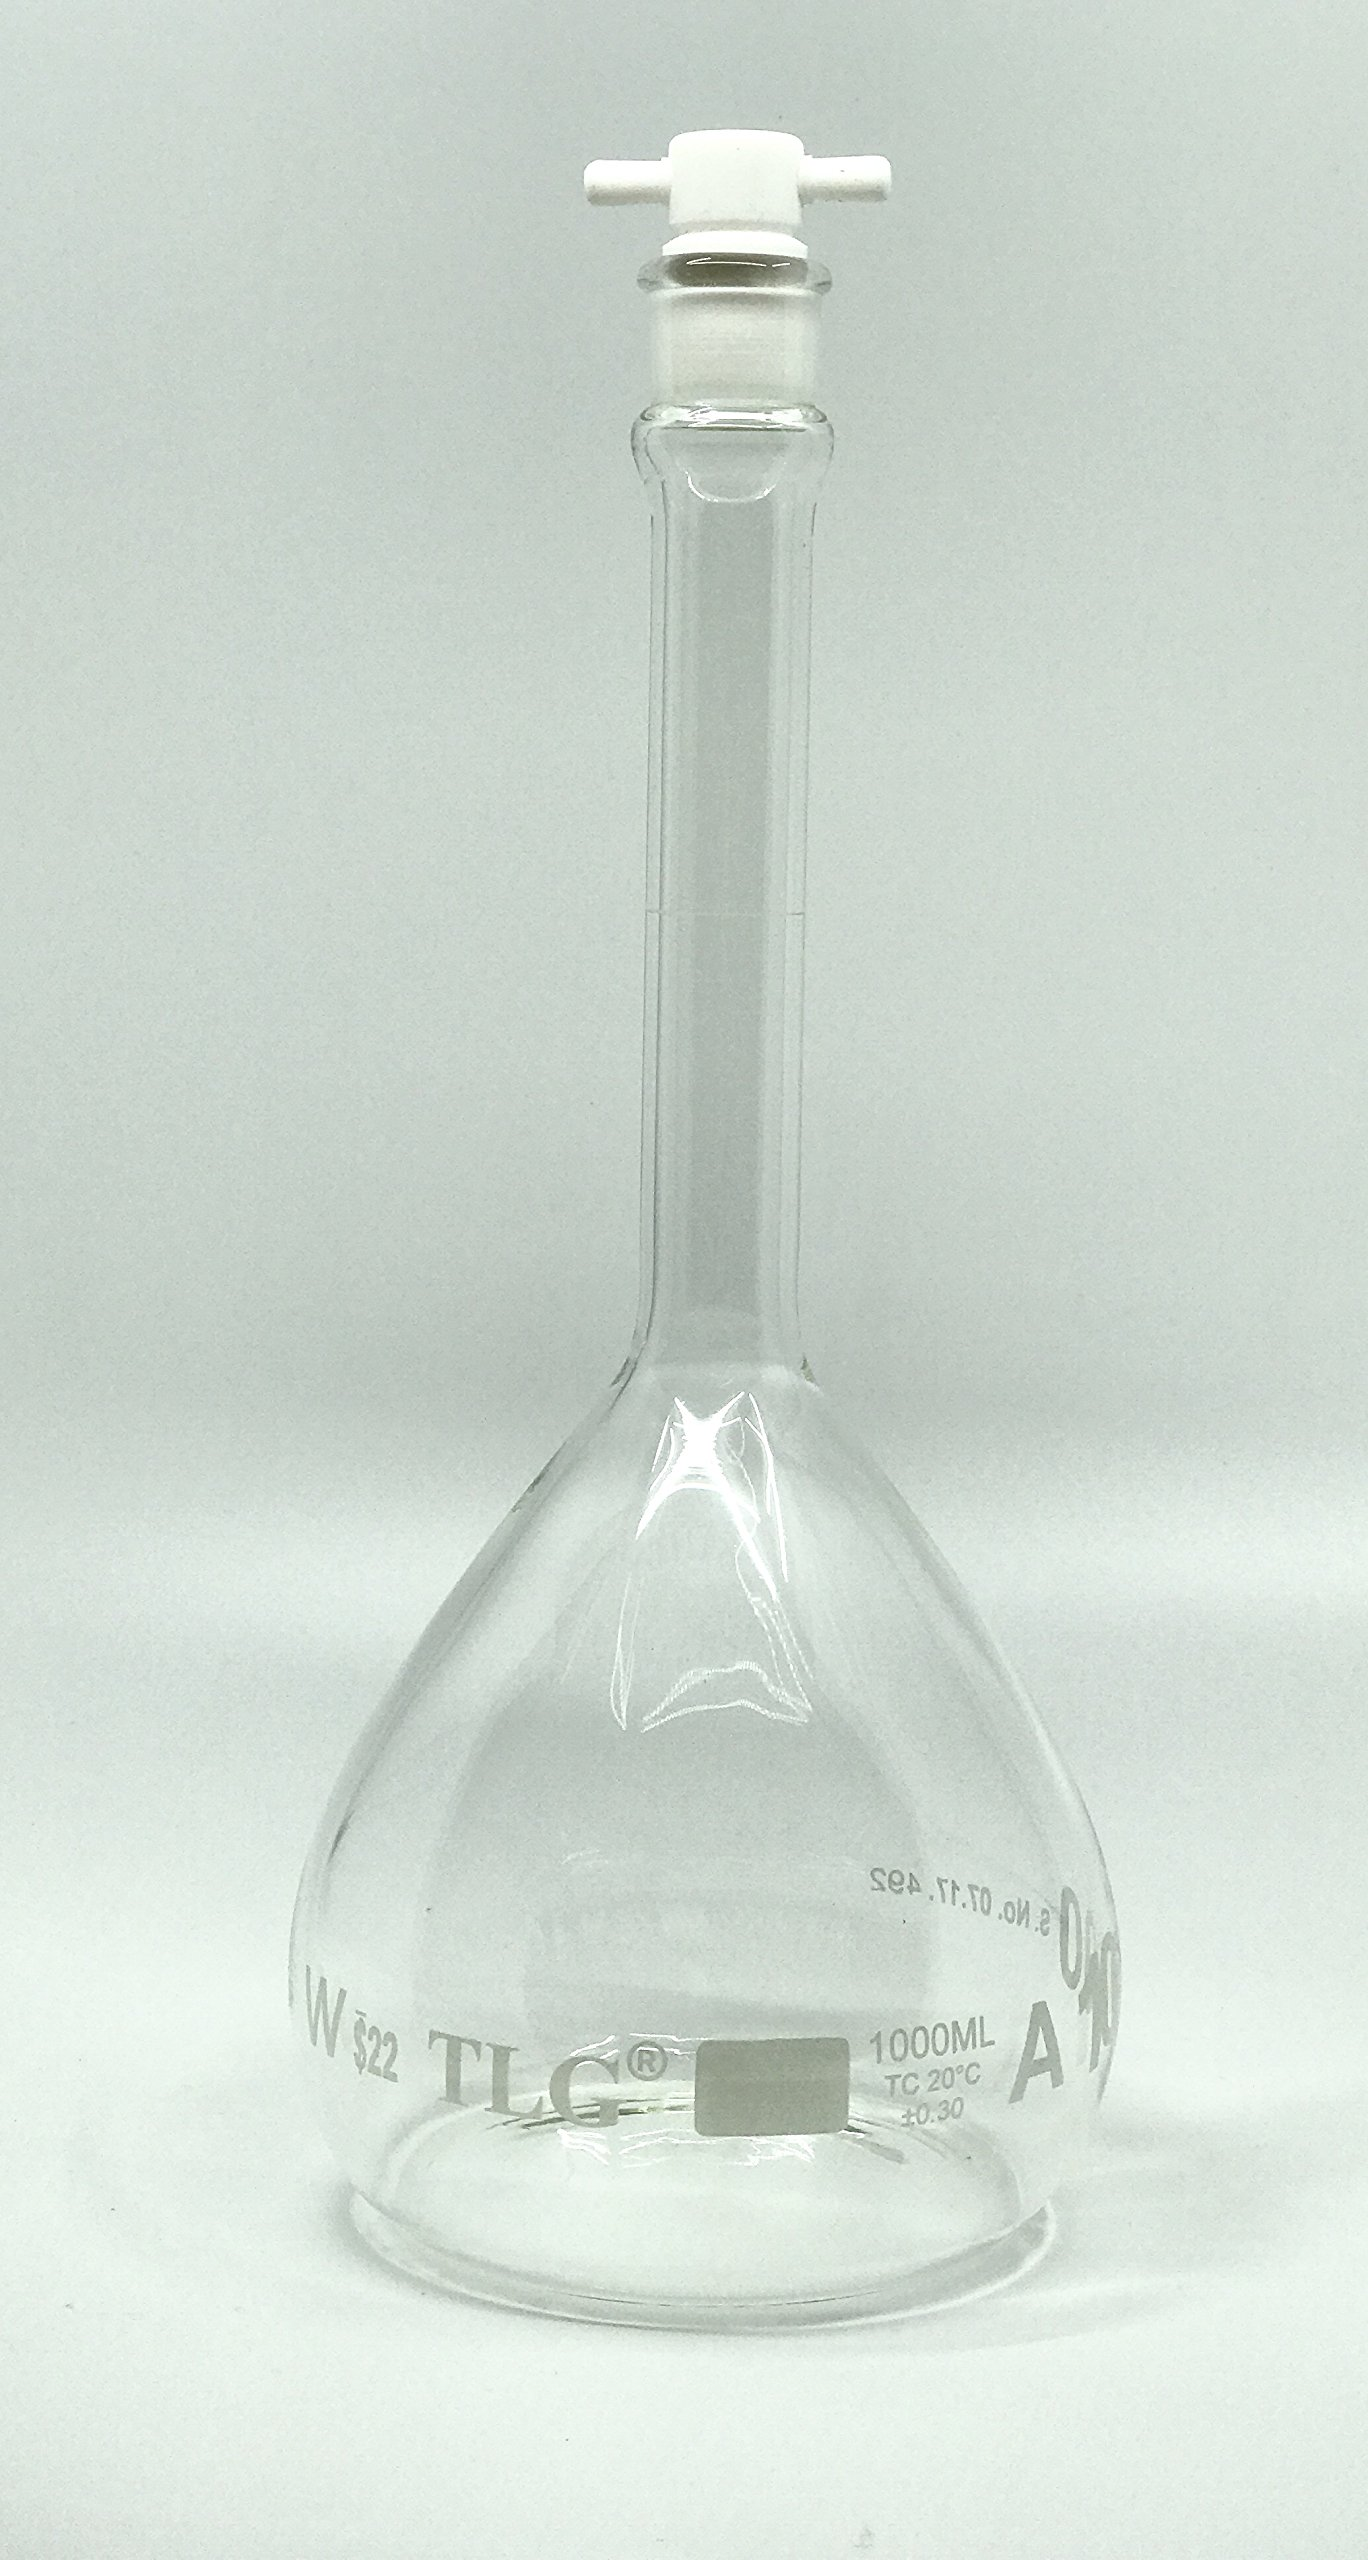 CHEM SCIENCE INC 129.702.09 Volumetric Flask, Serialized and Certified with One Graduation Mark Class A, Narrow Mouth, Capacity 1000 mL with Teflon Stopper Size # 22